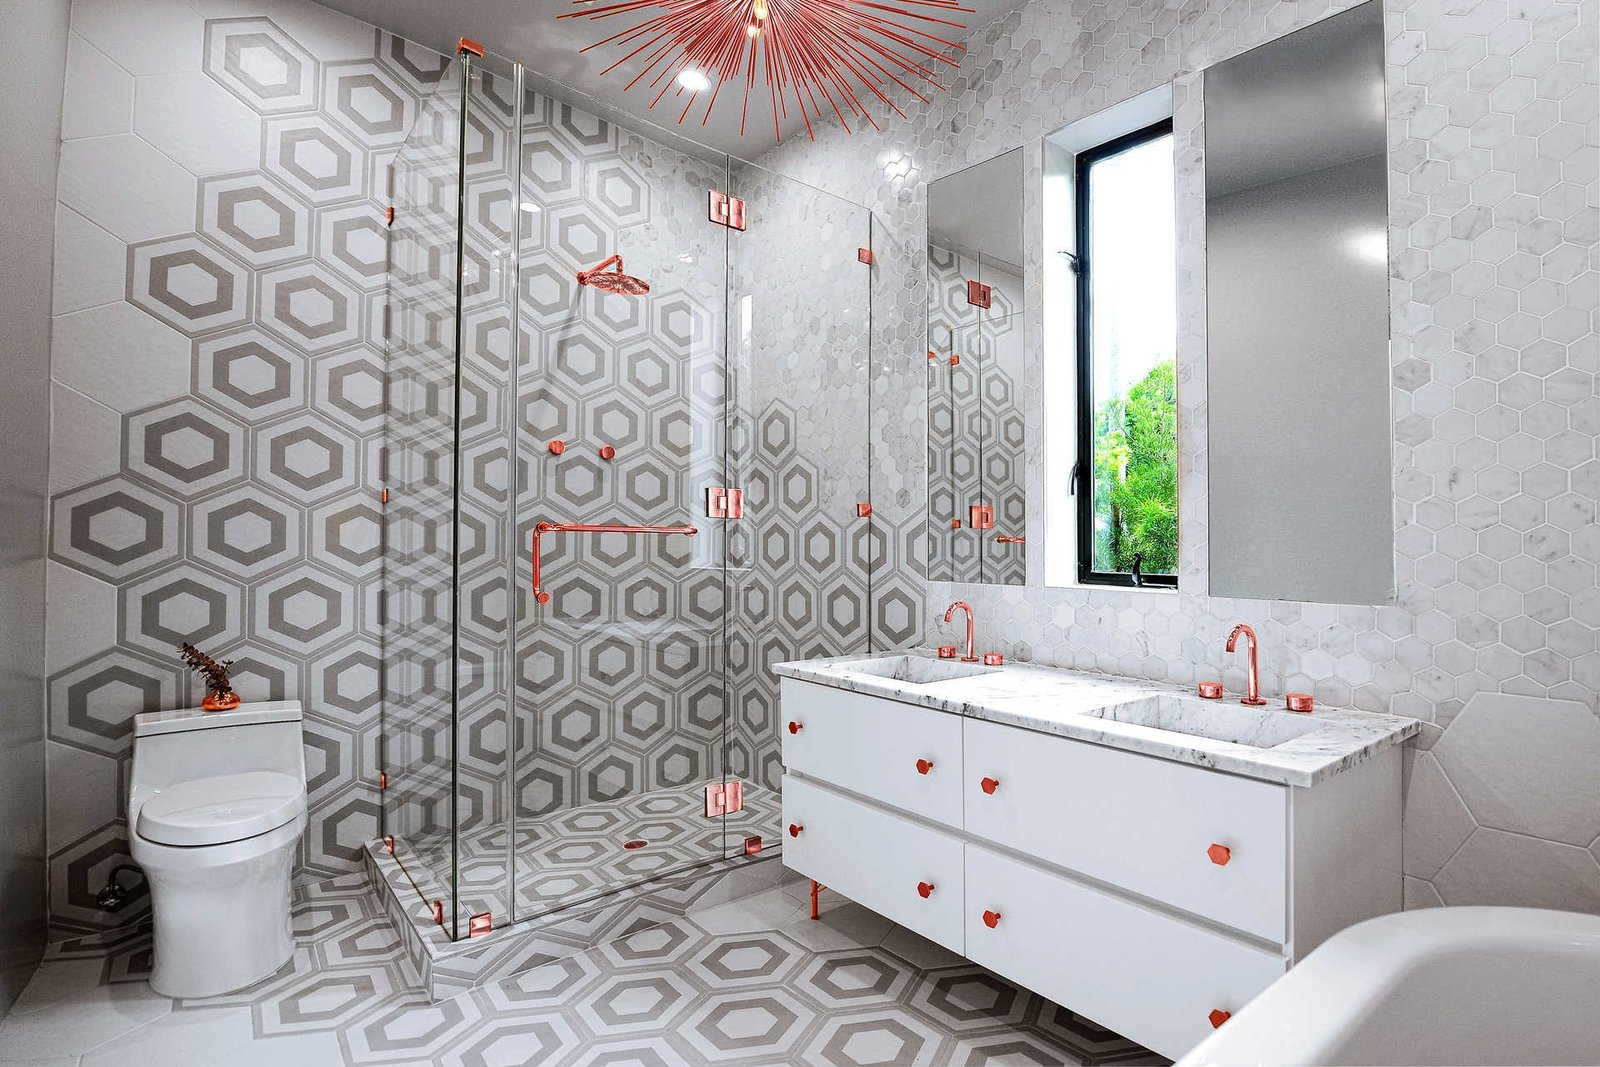 Bath Room, Enclosed Shower, Ceiling Lighting, Drop In Sink, Corner Shower, Ceramic Tile Floor, Marble Counter, Ceramic Tile Wall, and Two Piece Toilet  Italian Modernist Home